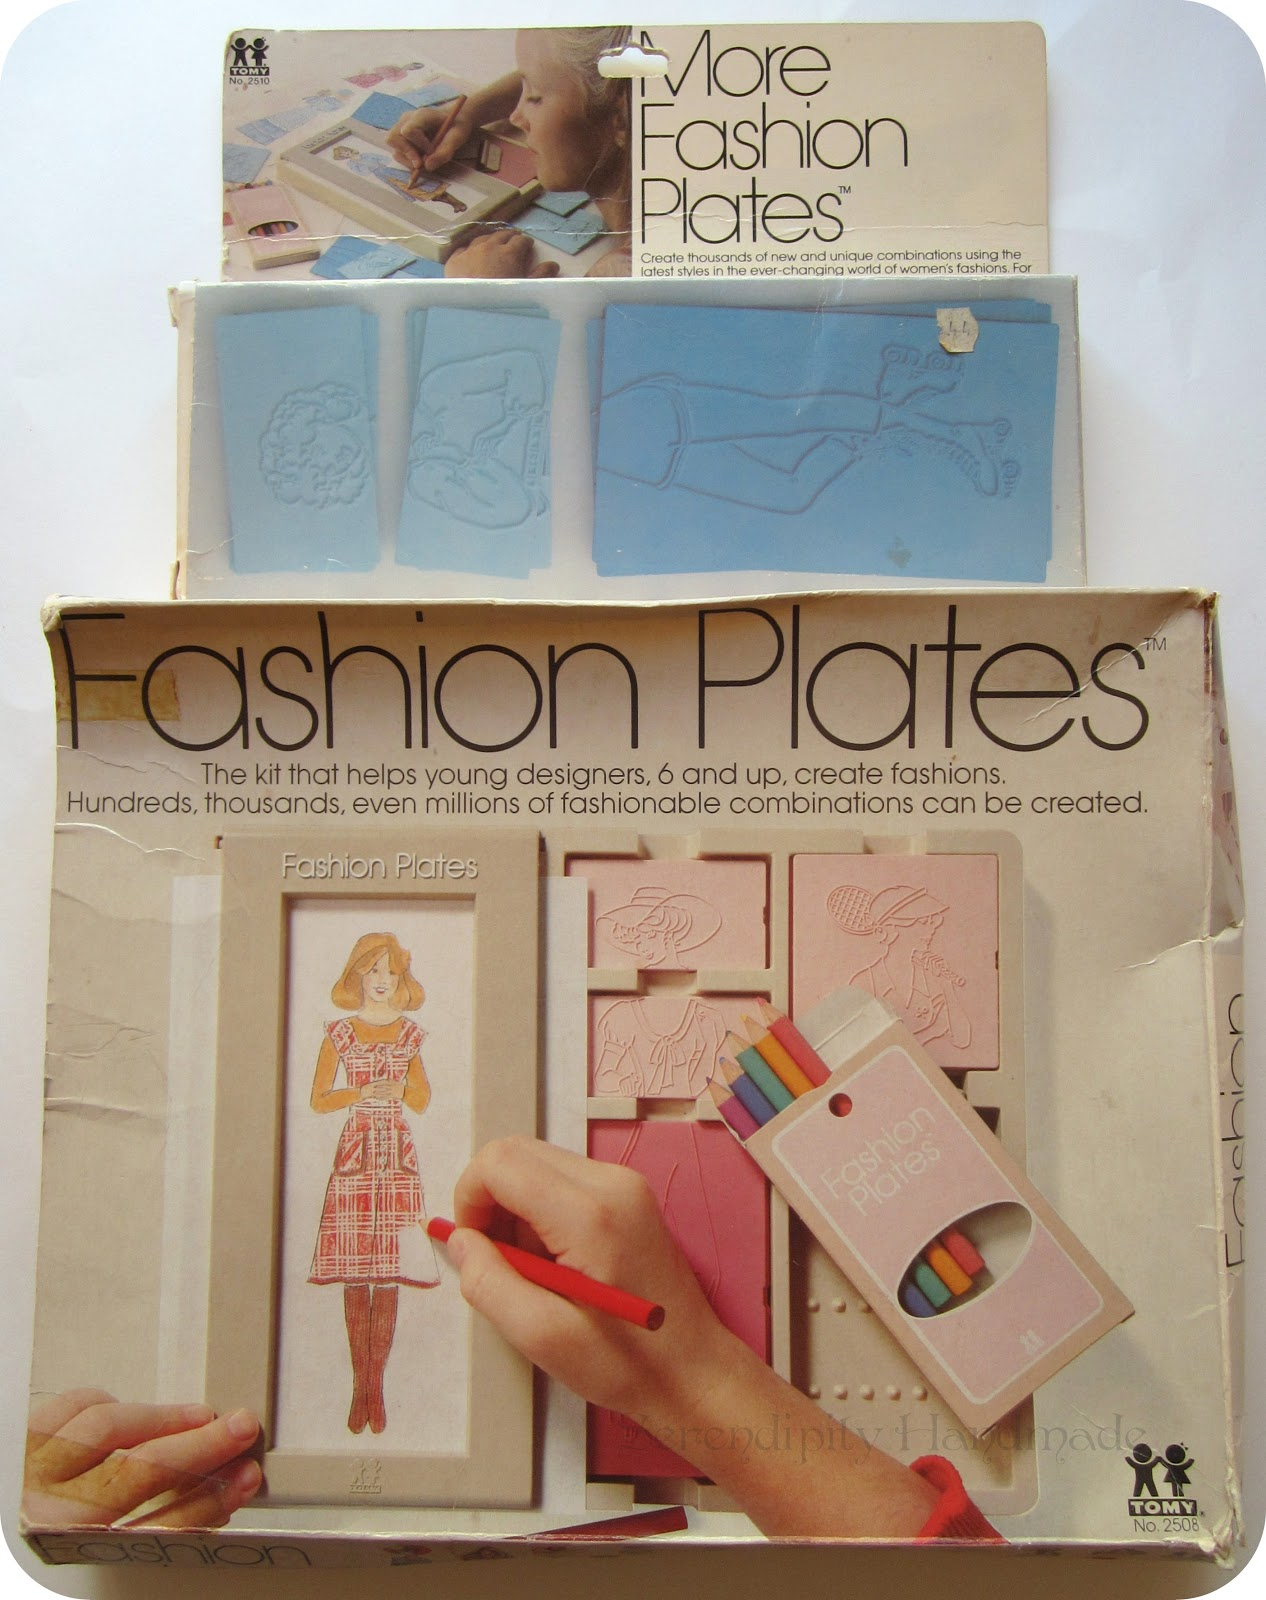 How To Do Barbie Design Fashion Plates Fashion Plates was first